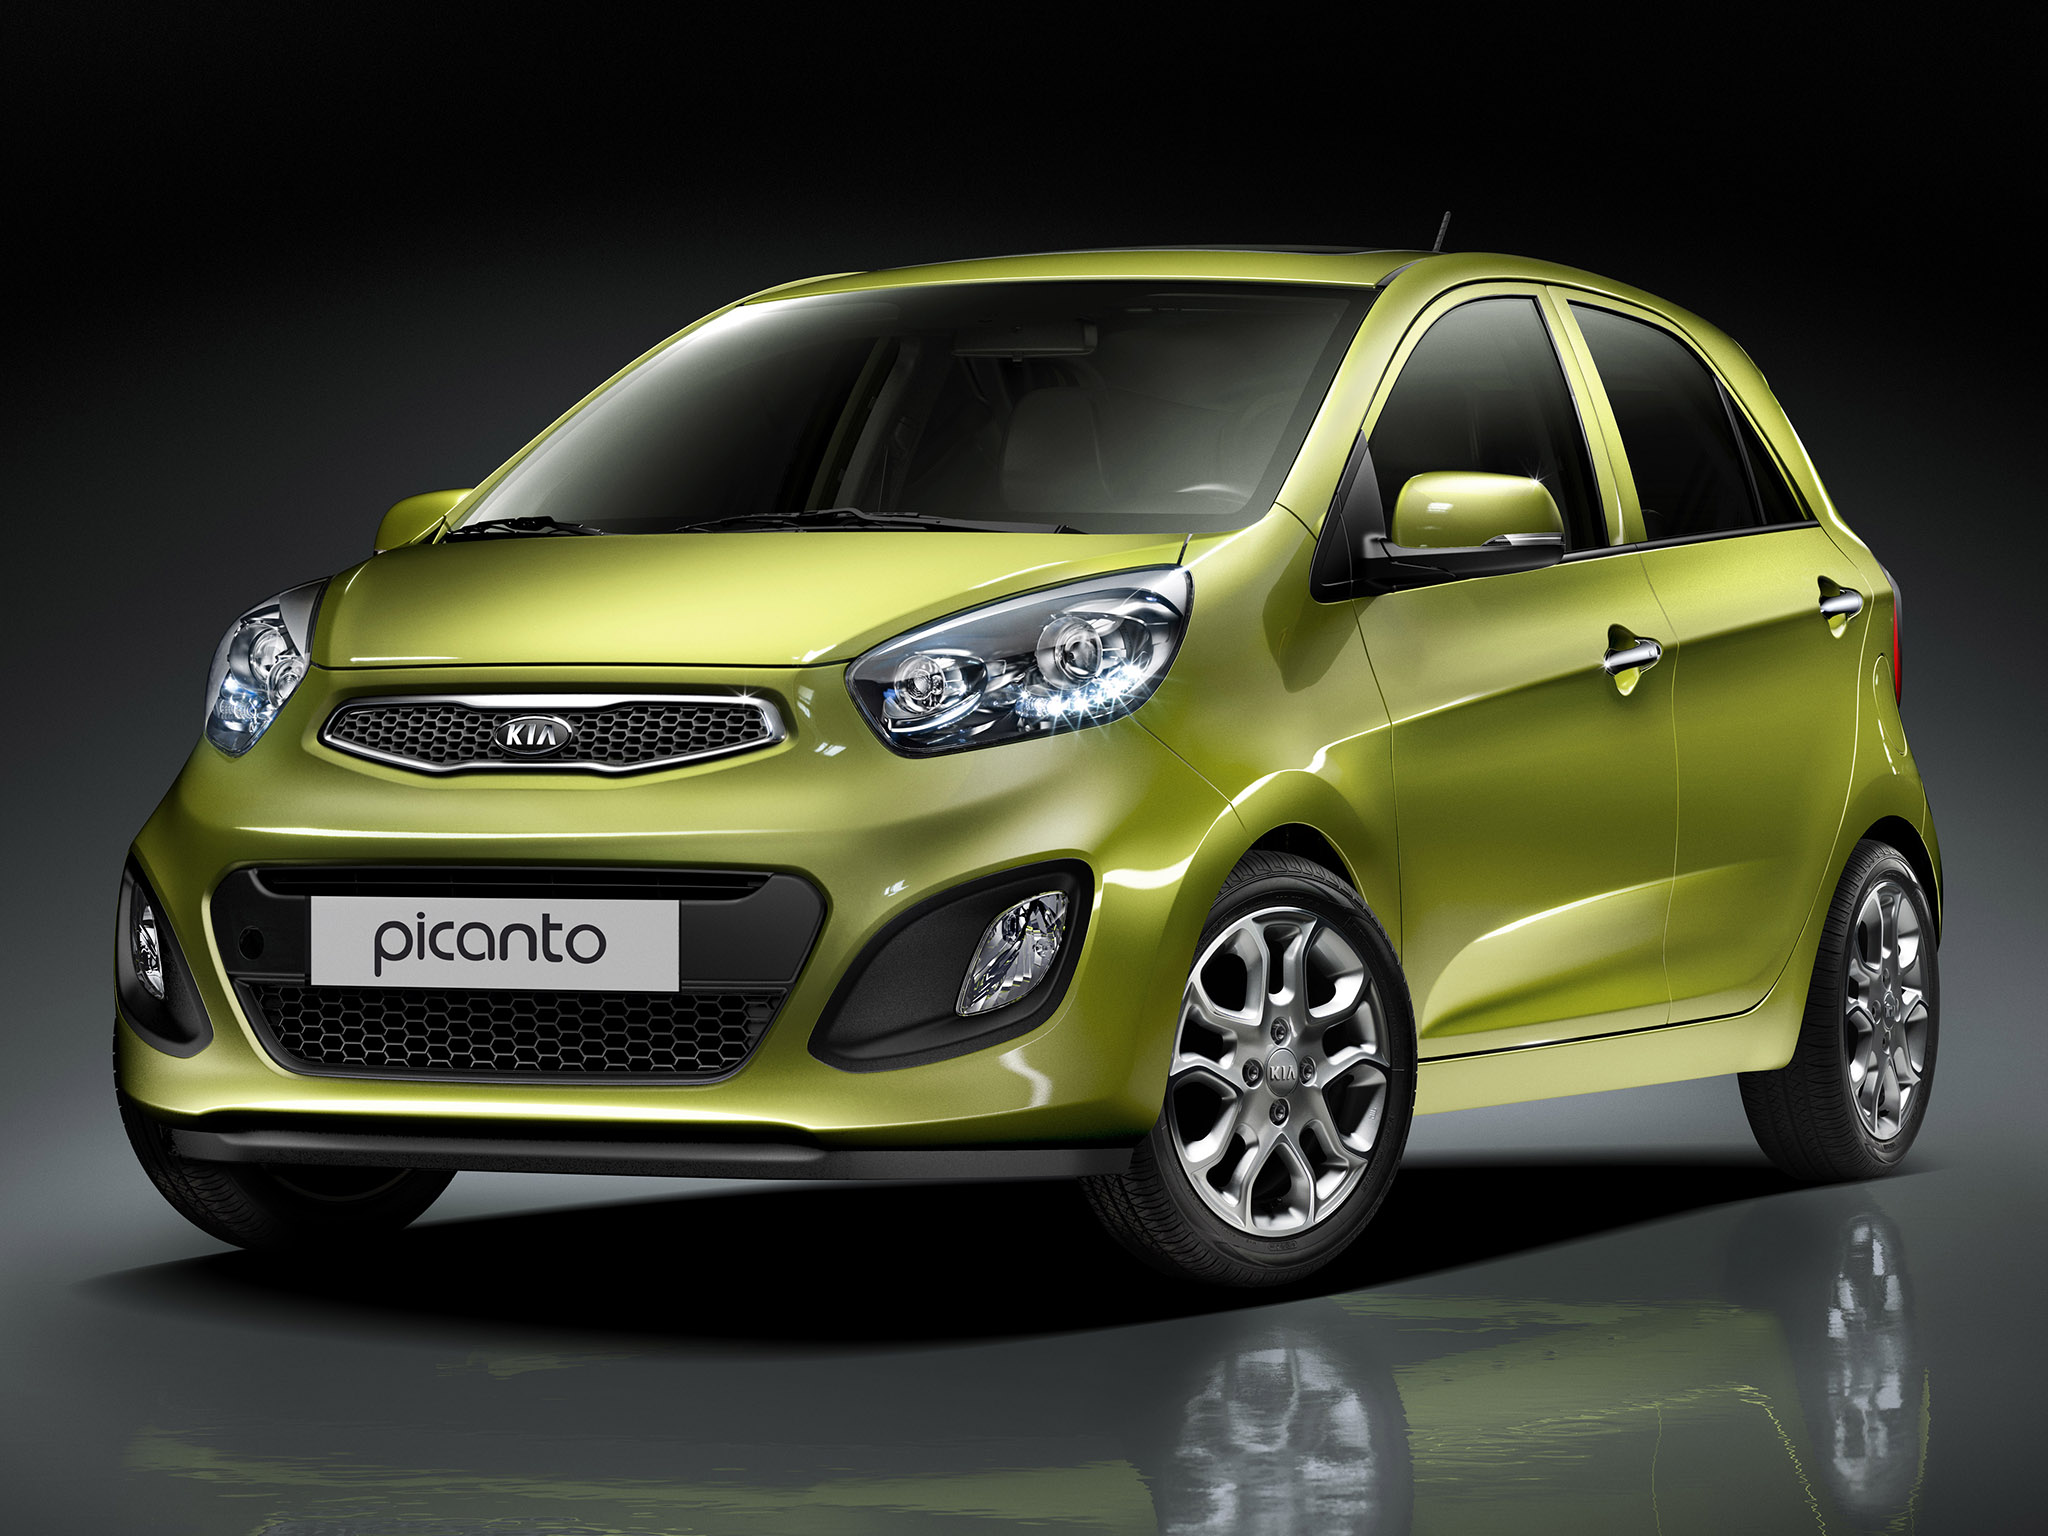 kia picanto 2011 kia picanto 2011 photo 30 car in pictures car photo gallery. Black Bedroom Furniture Sets. Home Design Ideas